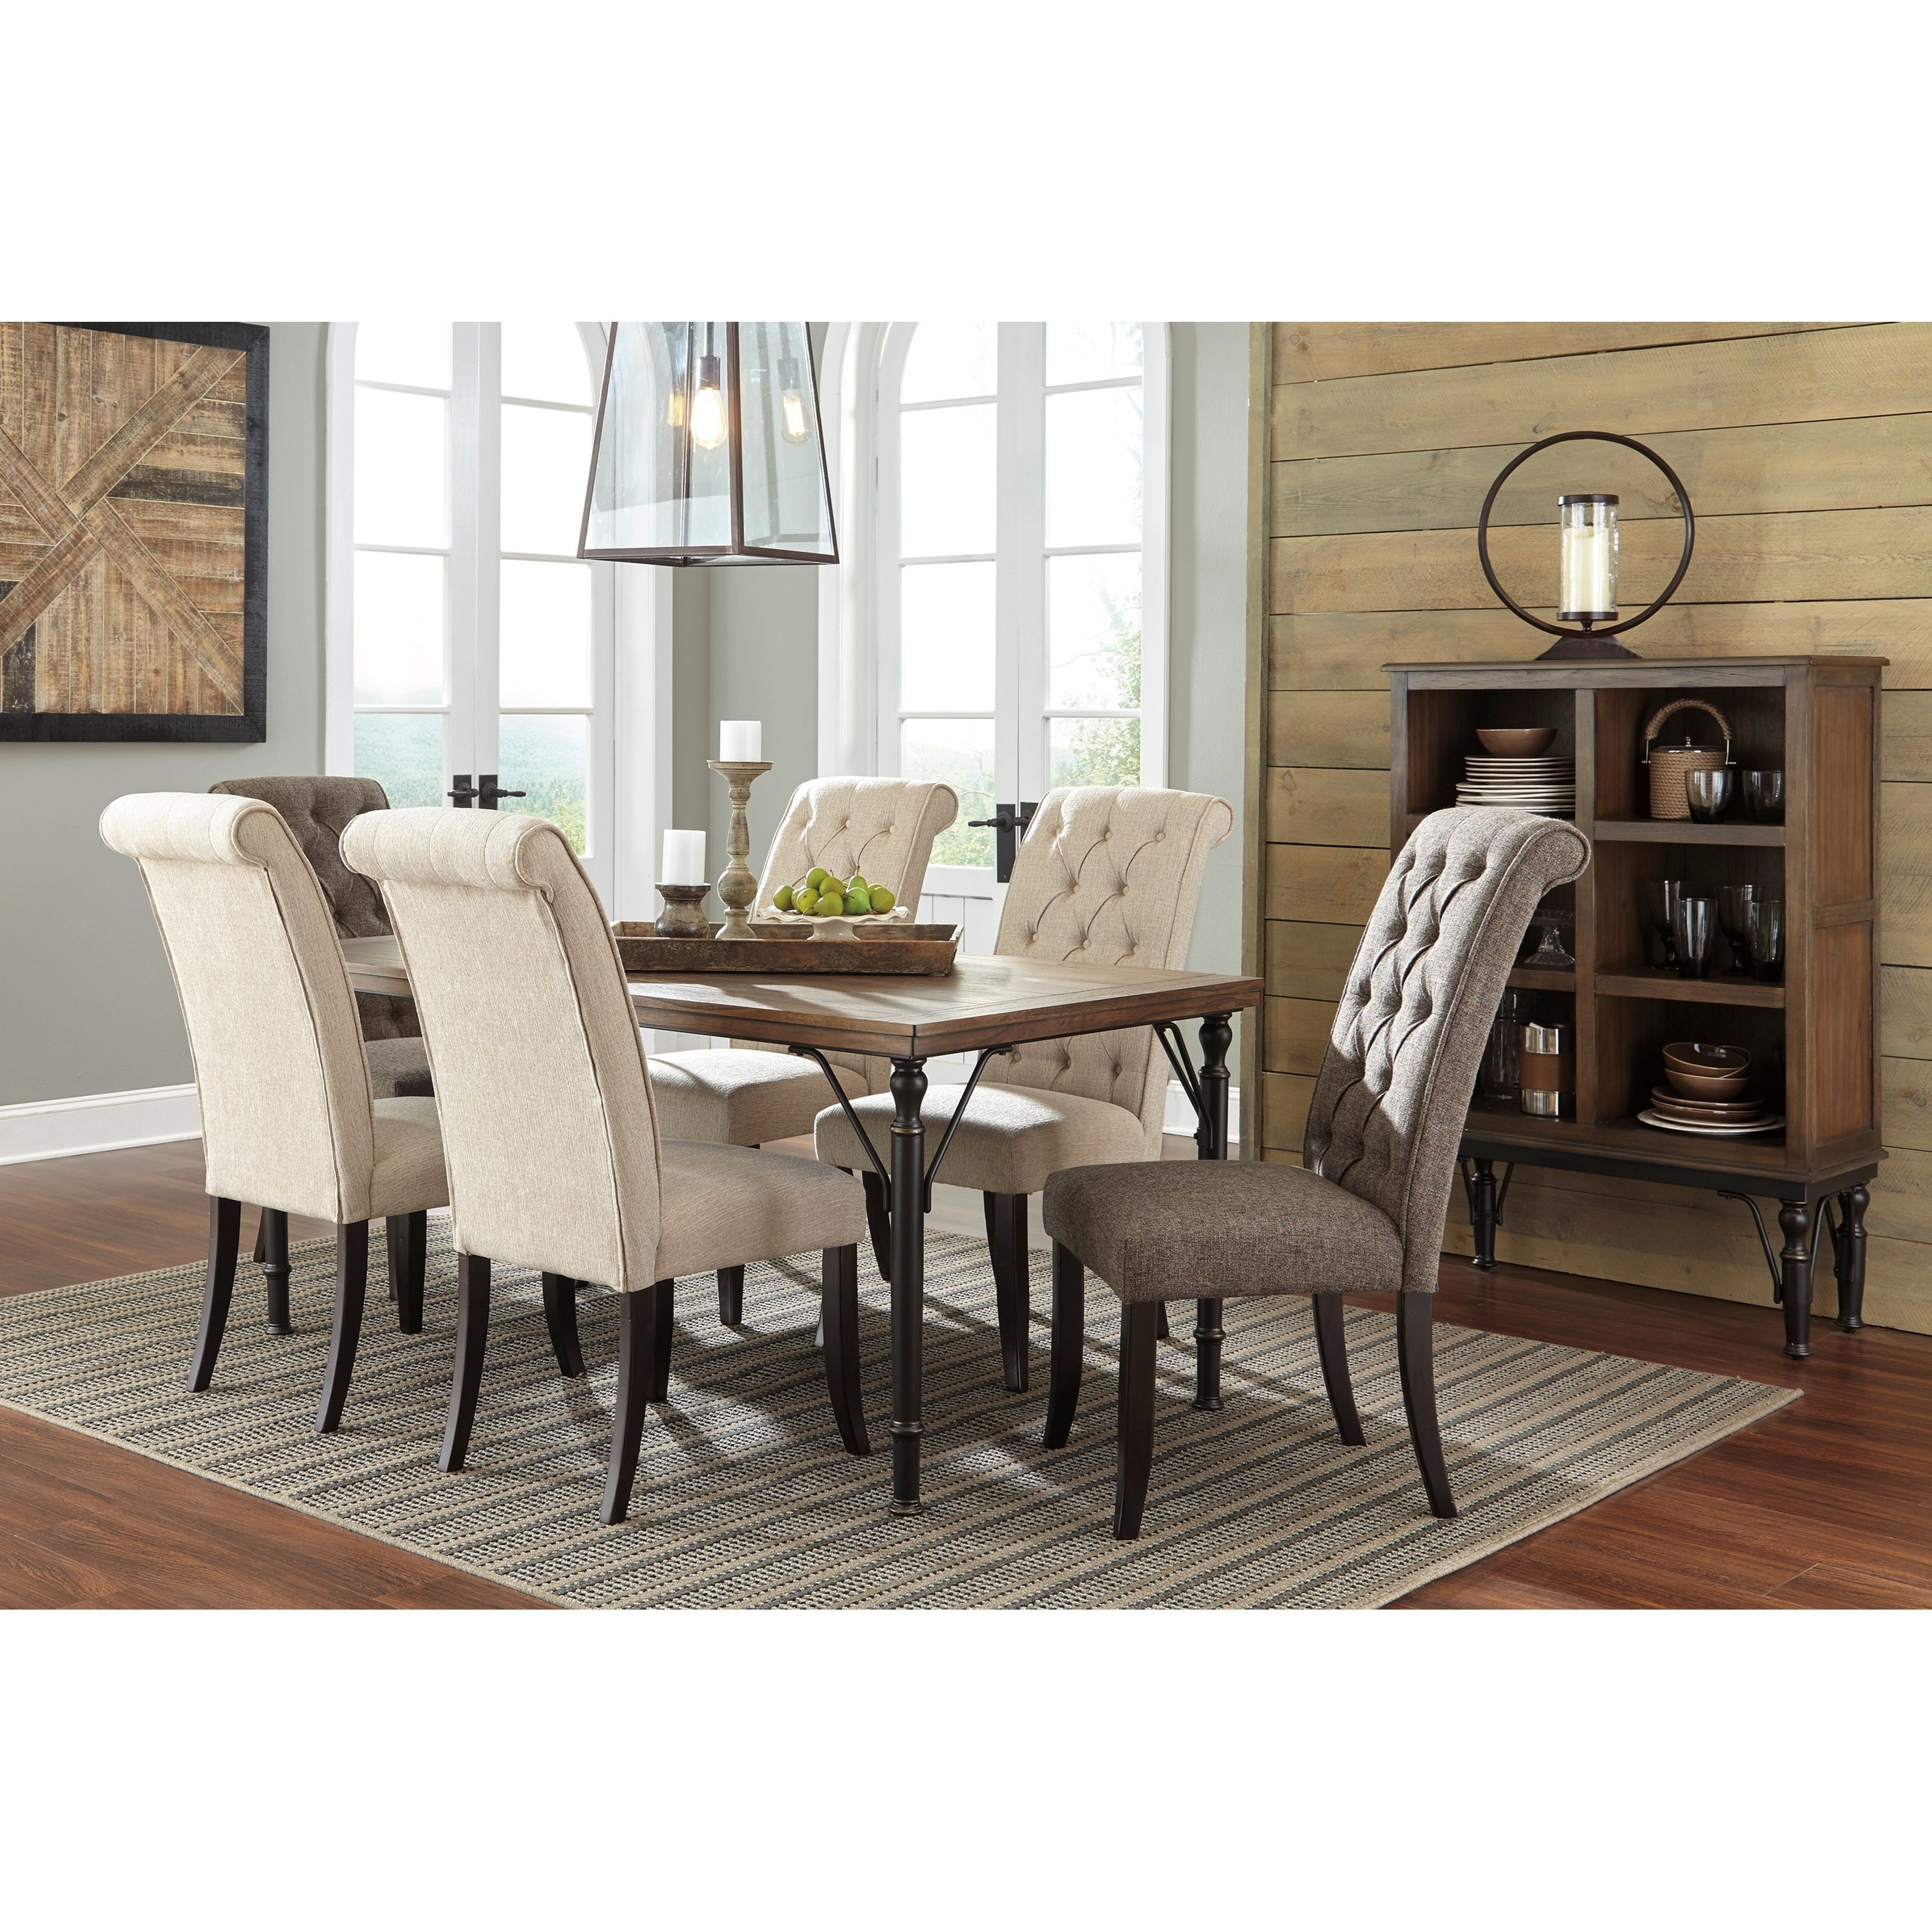 ... Signature Design by Ashley Tripton7-Piece Rectangular Dining Room Table Set ...  sc 1 st  Coconis Furniture & Signature Design by Ashley Tripton 7-Piece Rectangular Dining Room ...